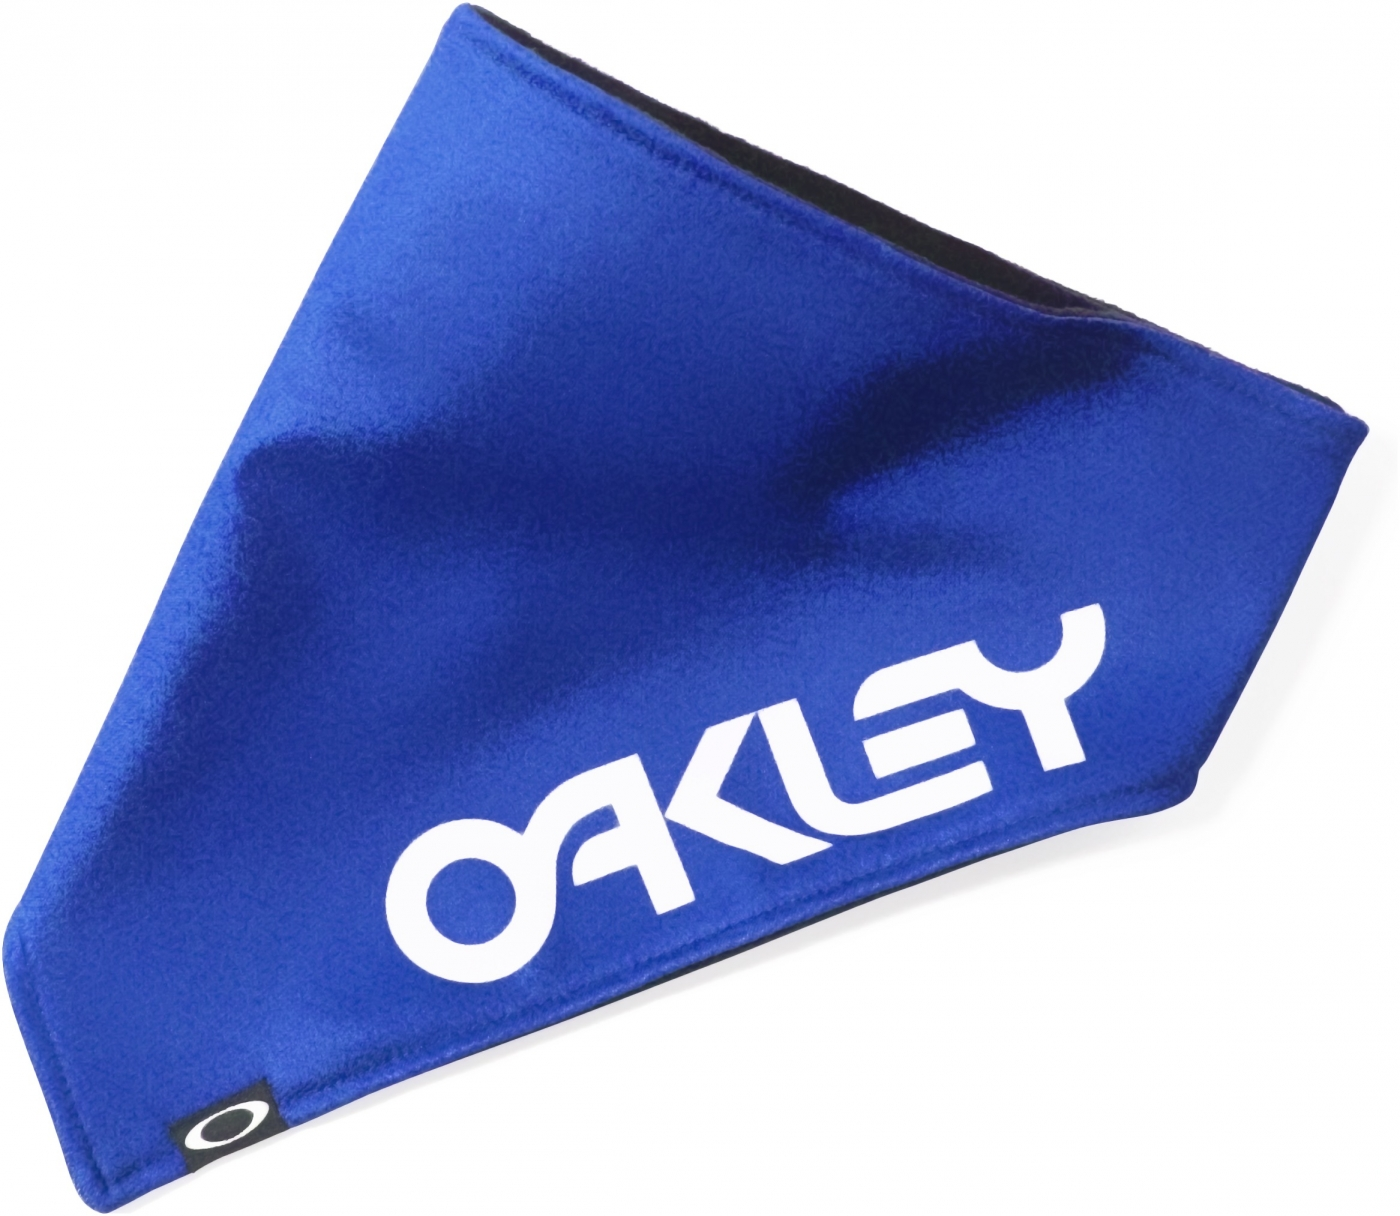 OAKLEY nákrčník SWITCH IT UP electric blue  090127e47f